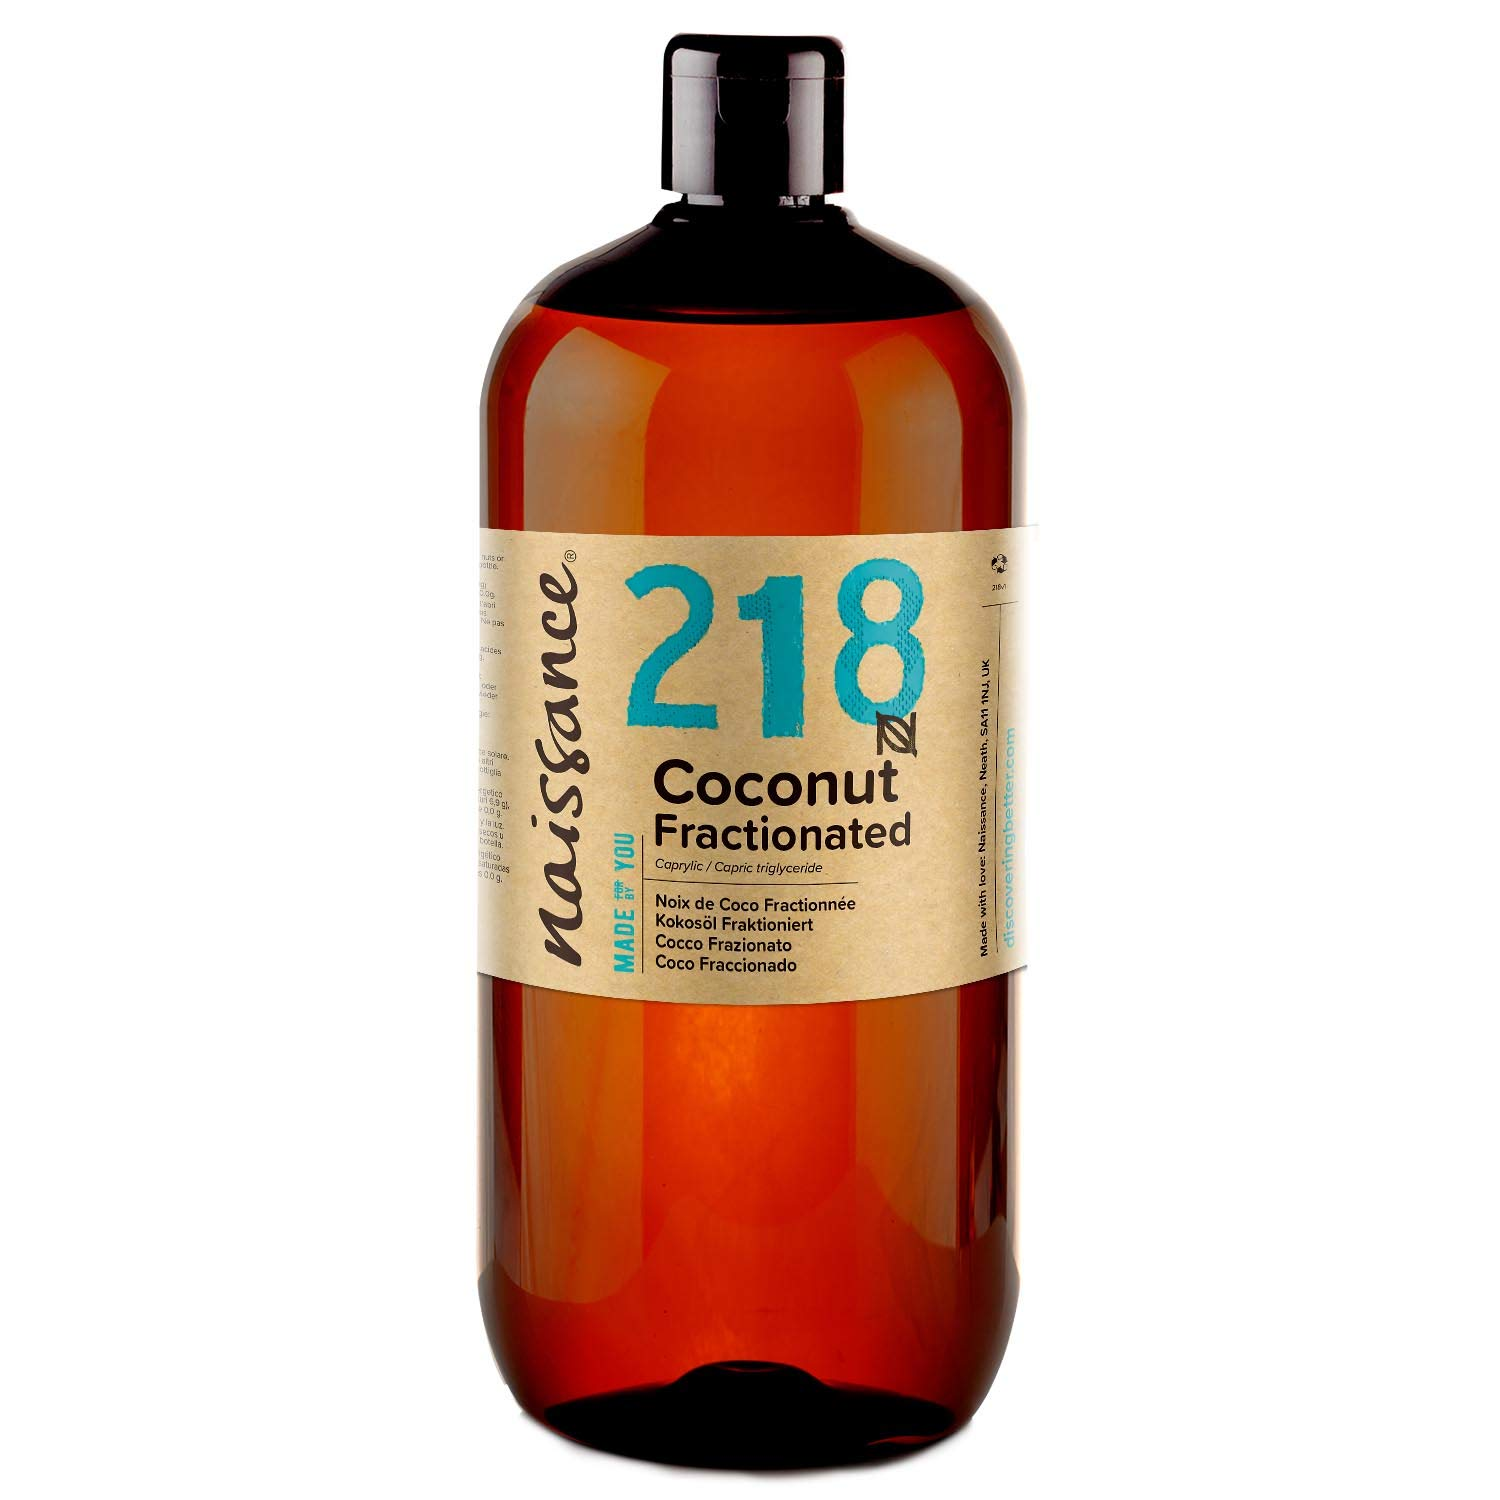 Naissance Fractionated Coconut (#218) 1 Litre – Pure, Natural, Cruelty Free, Vegan – Moisturising & Hydrating – Ideal for Aromatherapy, Massage and DIY Beauty Recipes